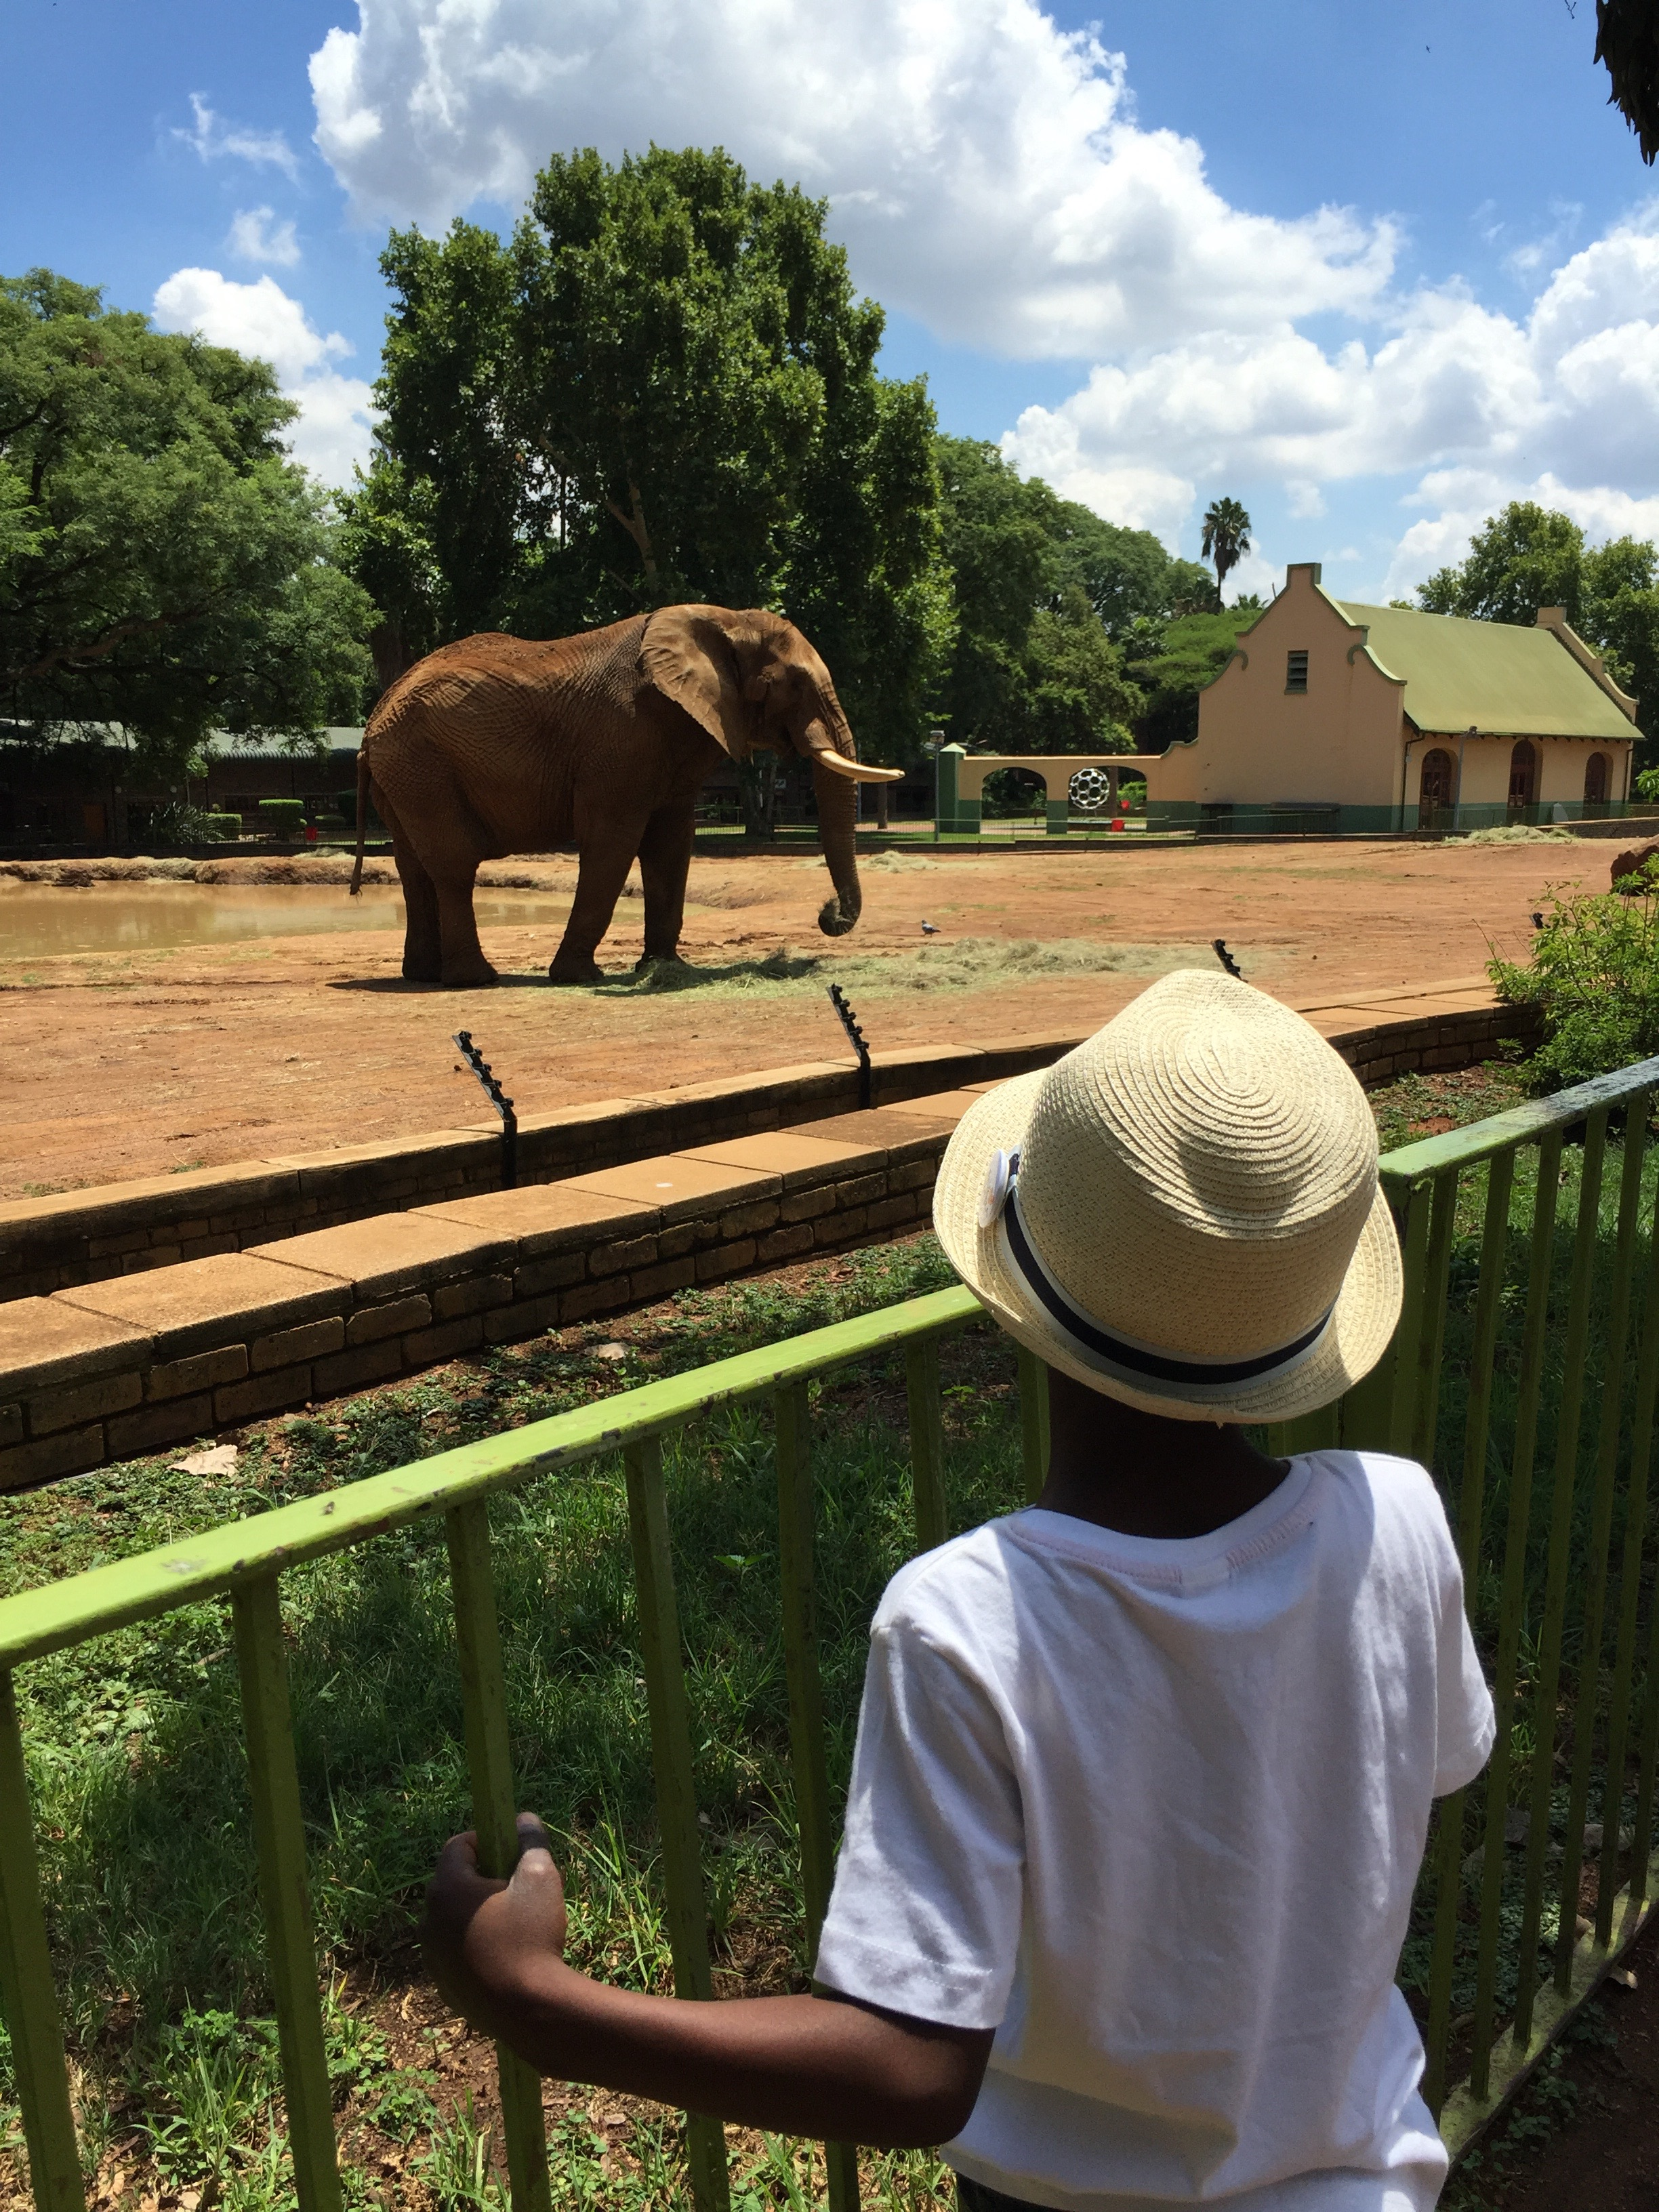 T and an elephant.